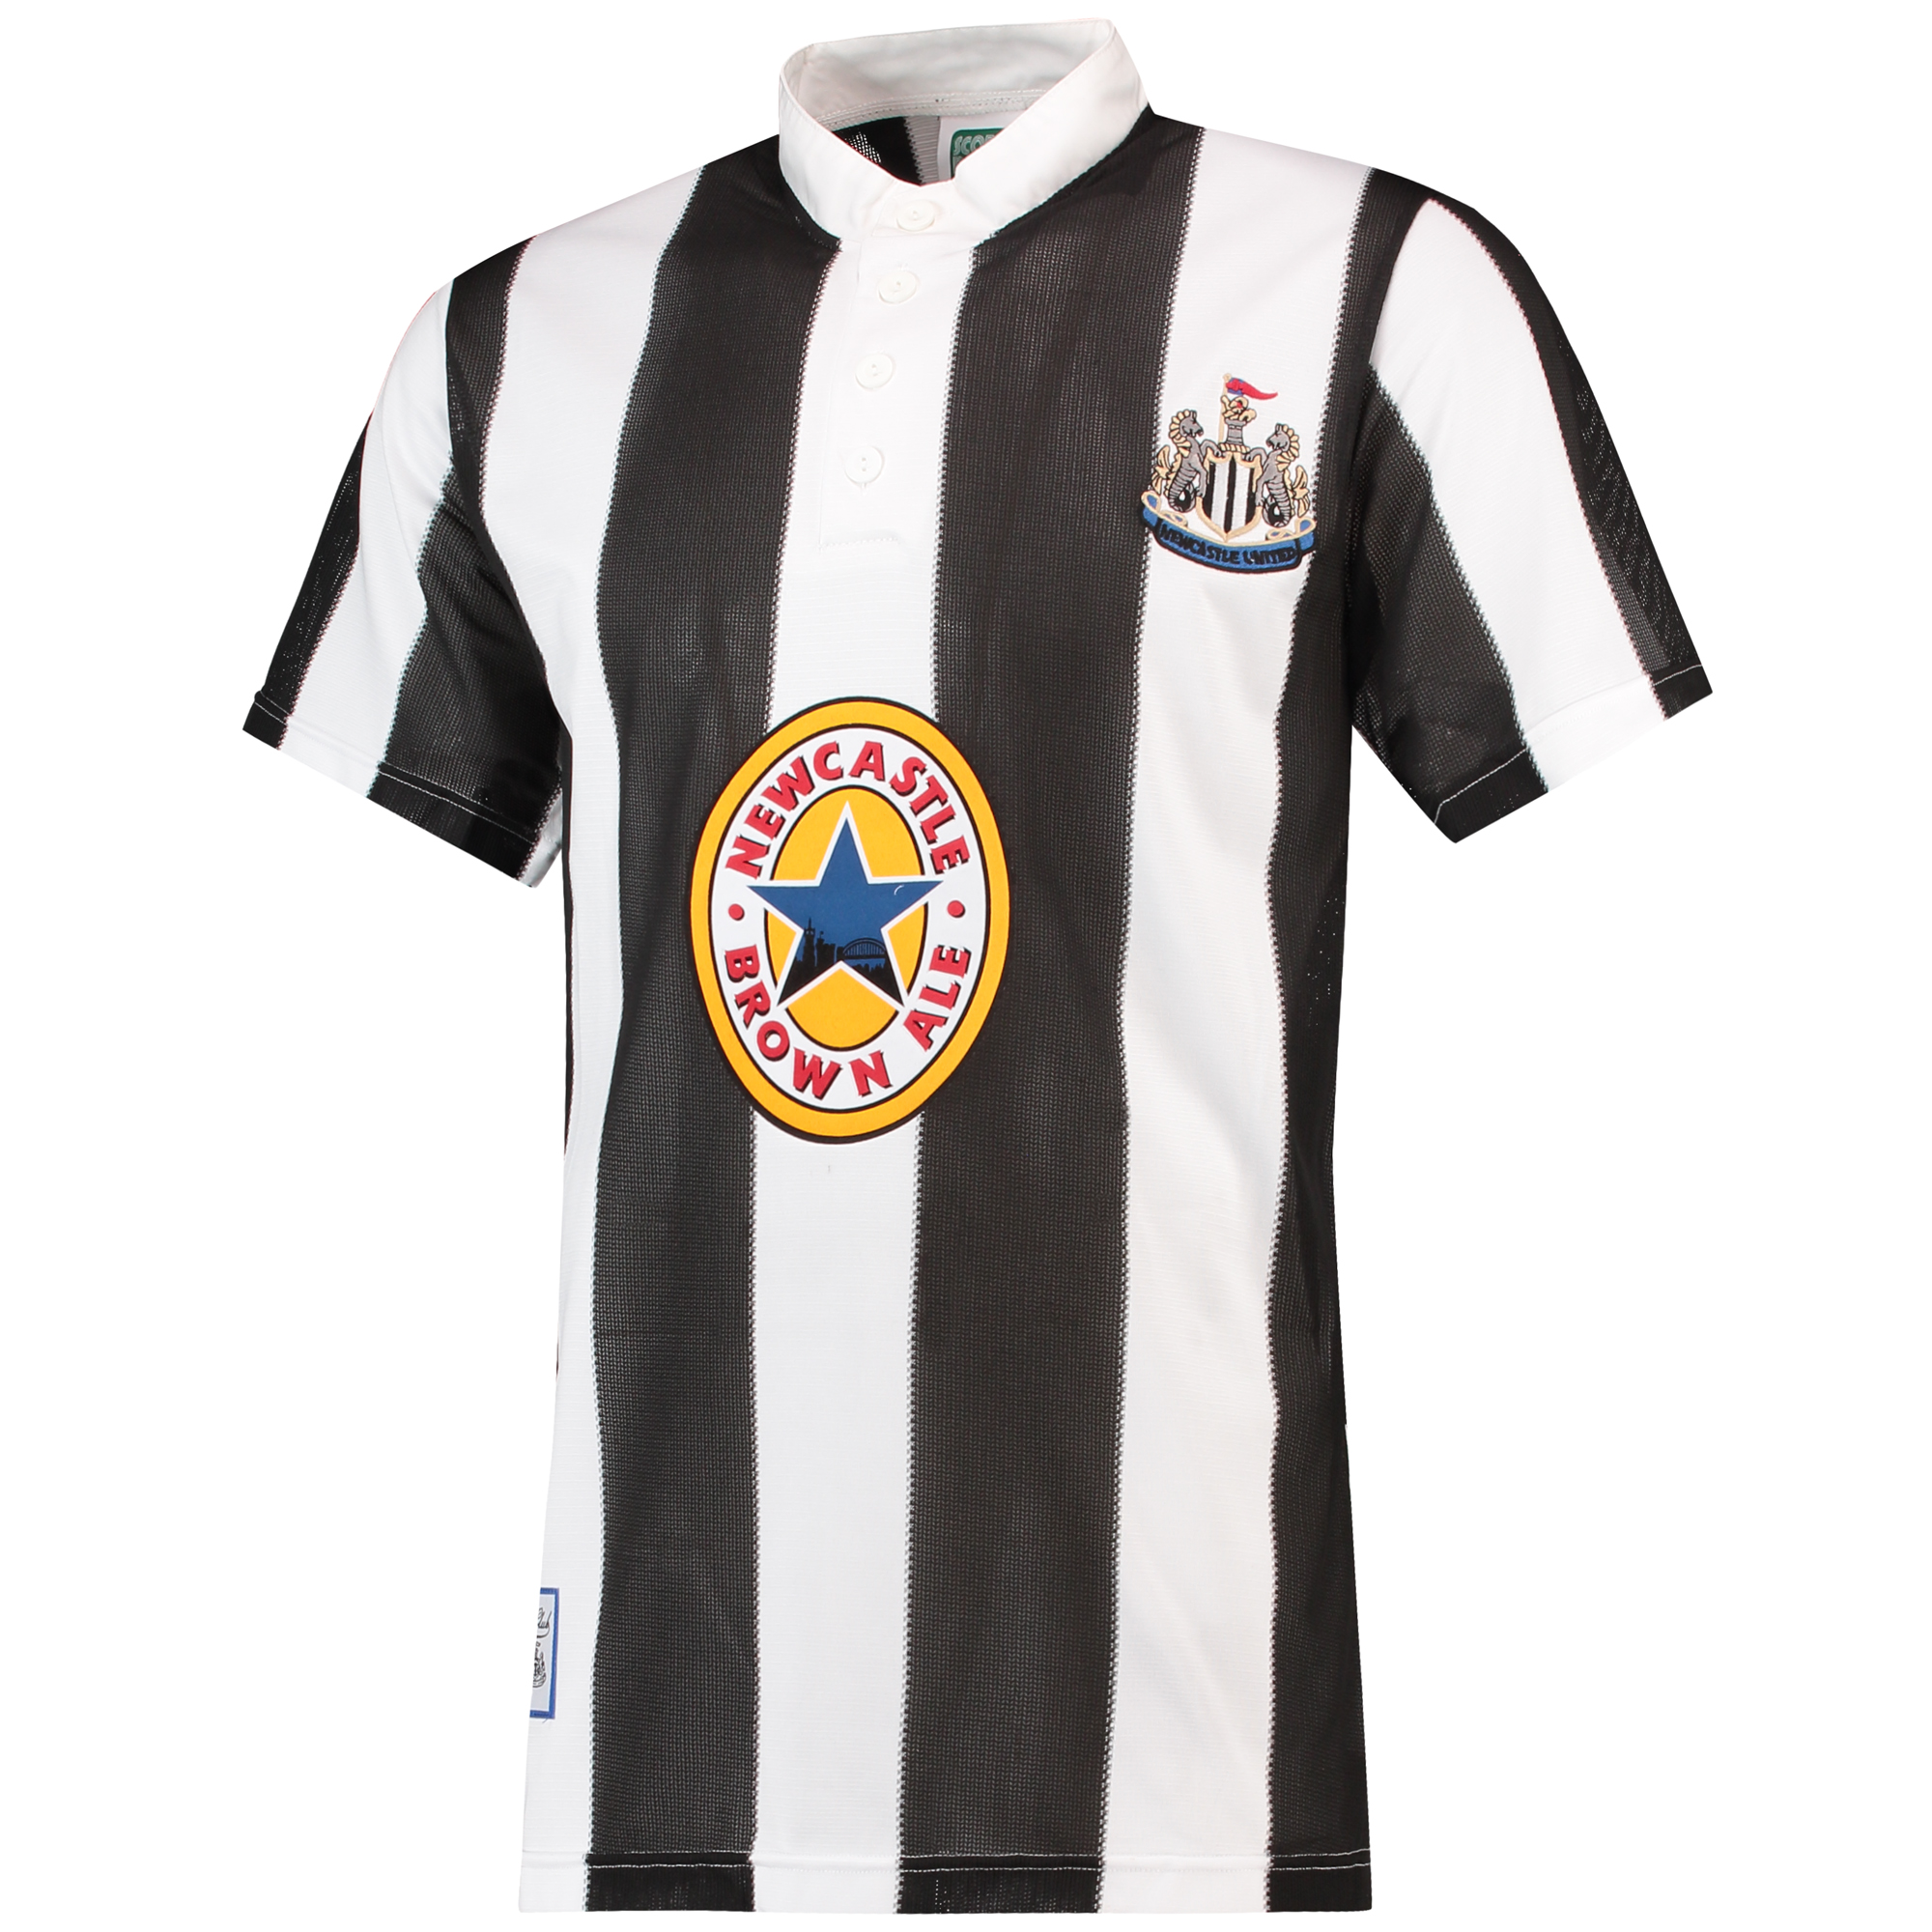 Newcastle United 1996 Shirt